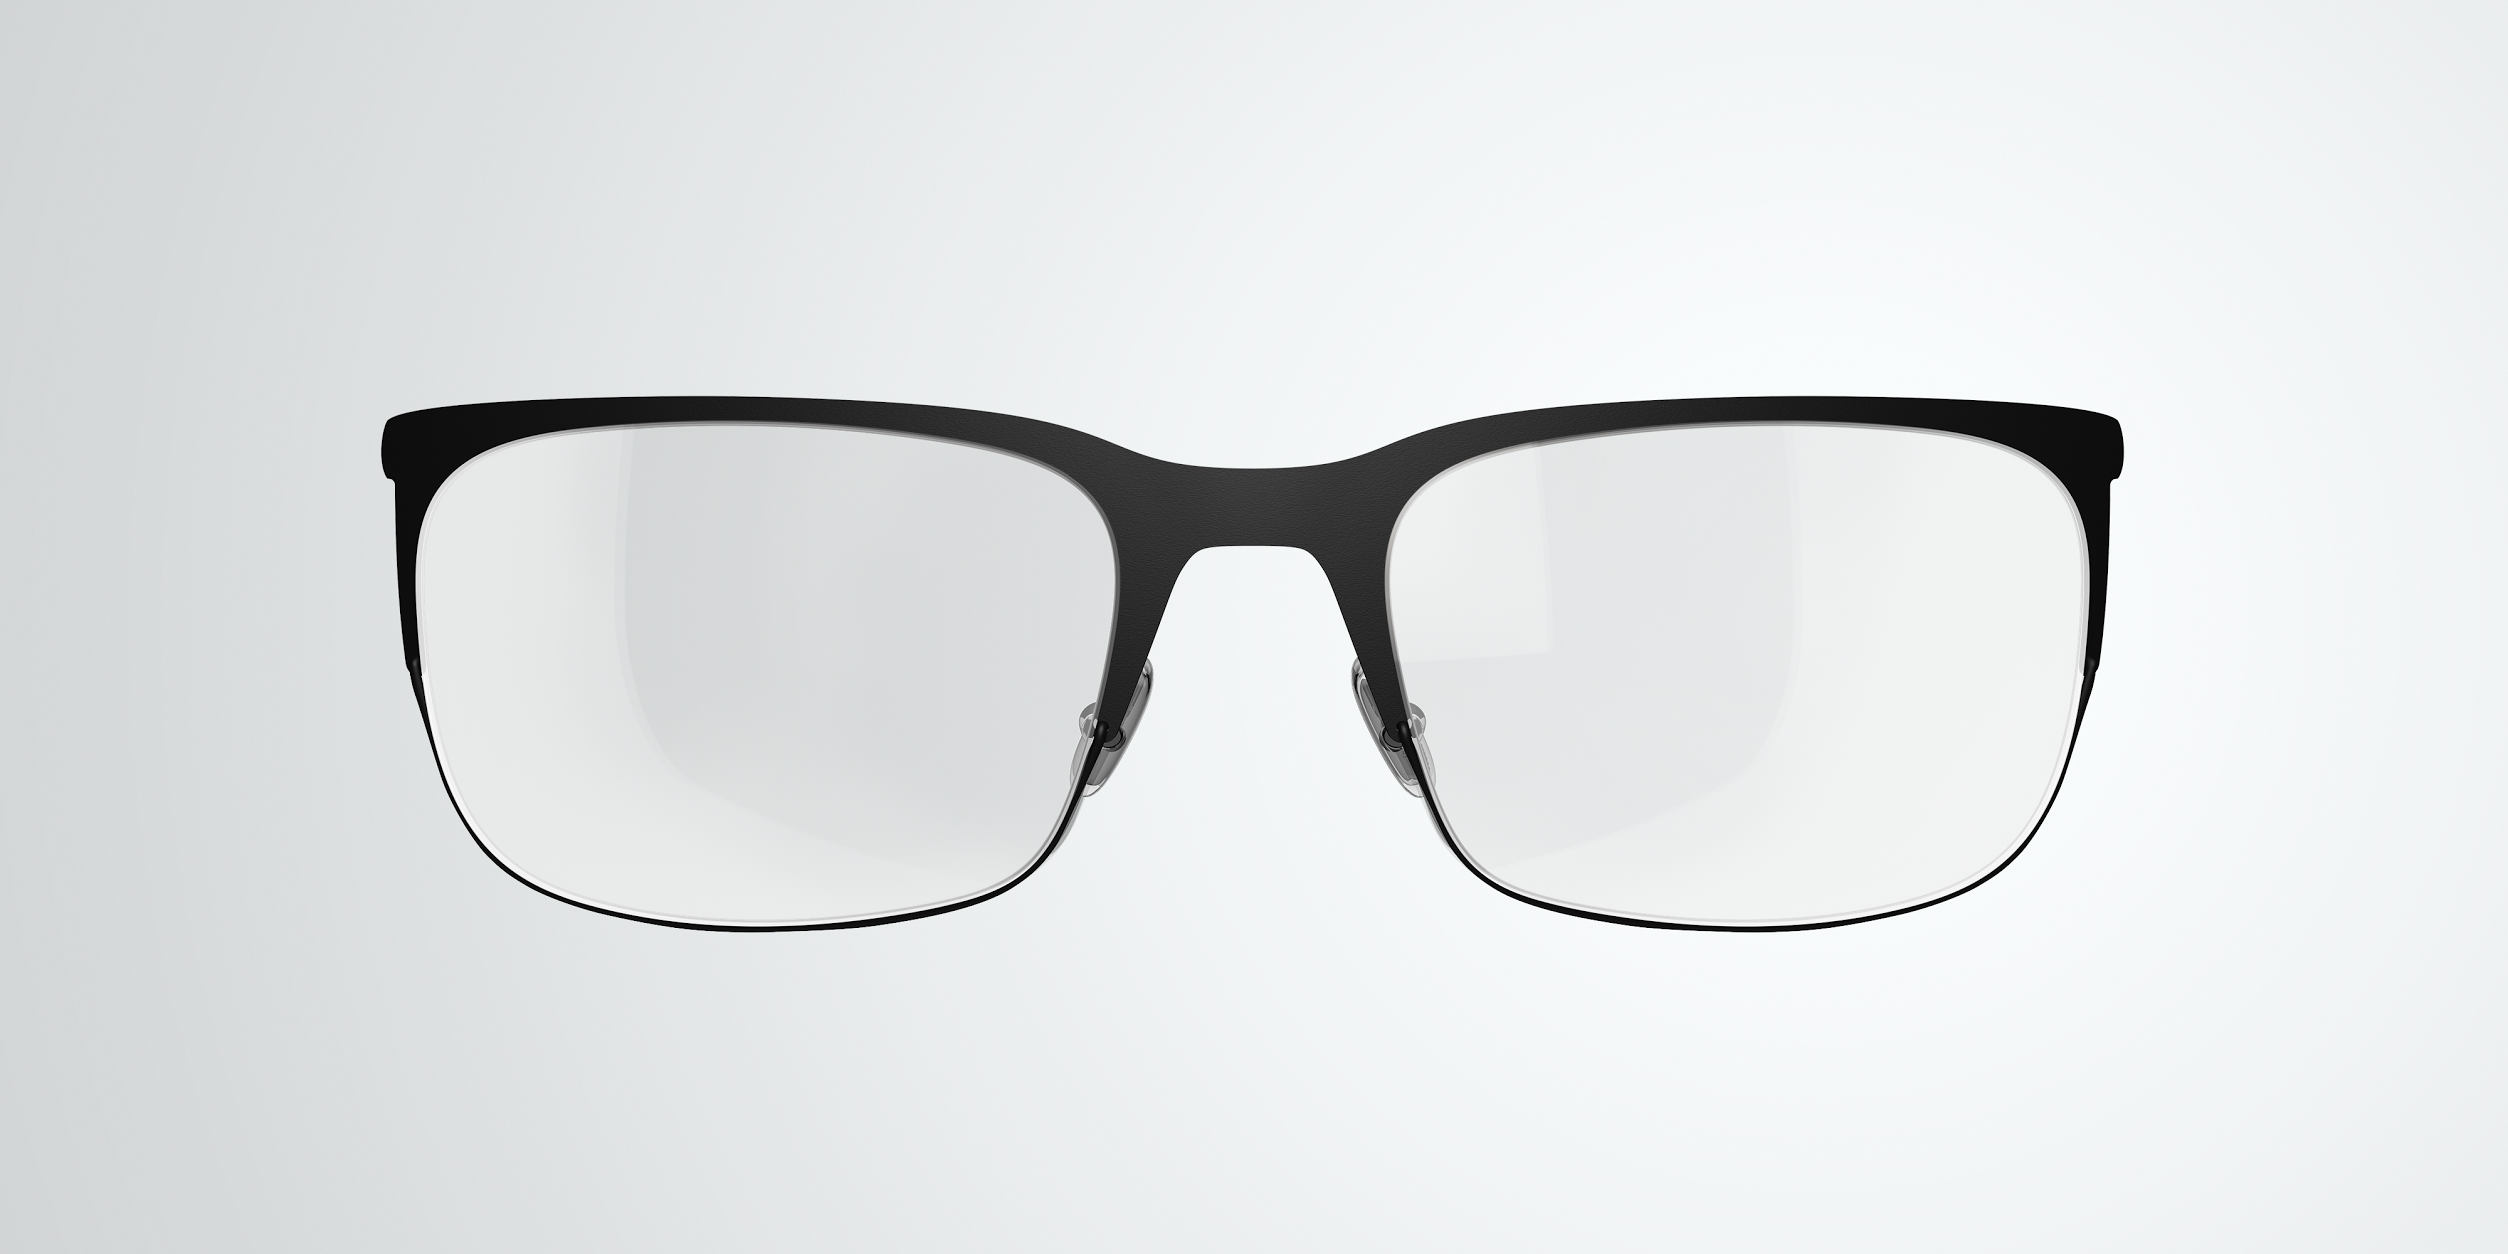 glass5 Google Glass can now be used with regular glasses after Google introduces $225 frames